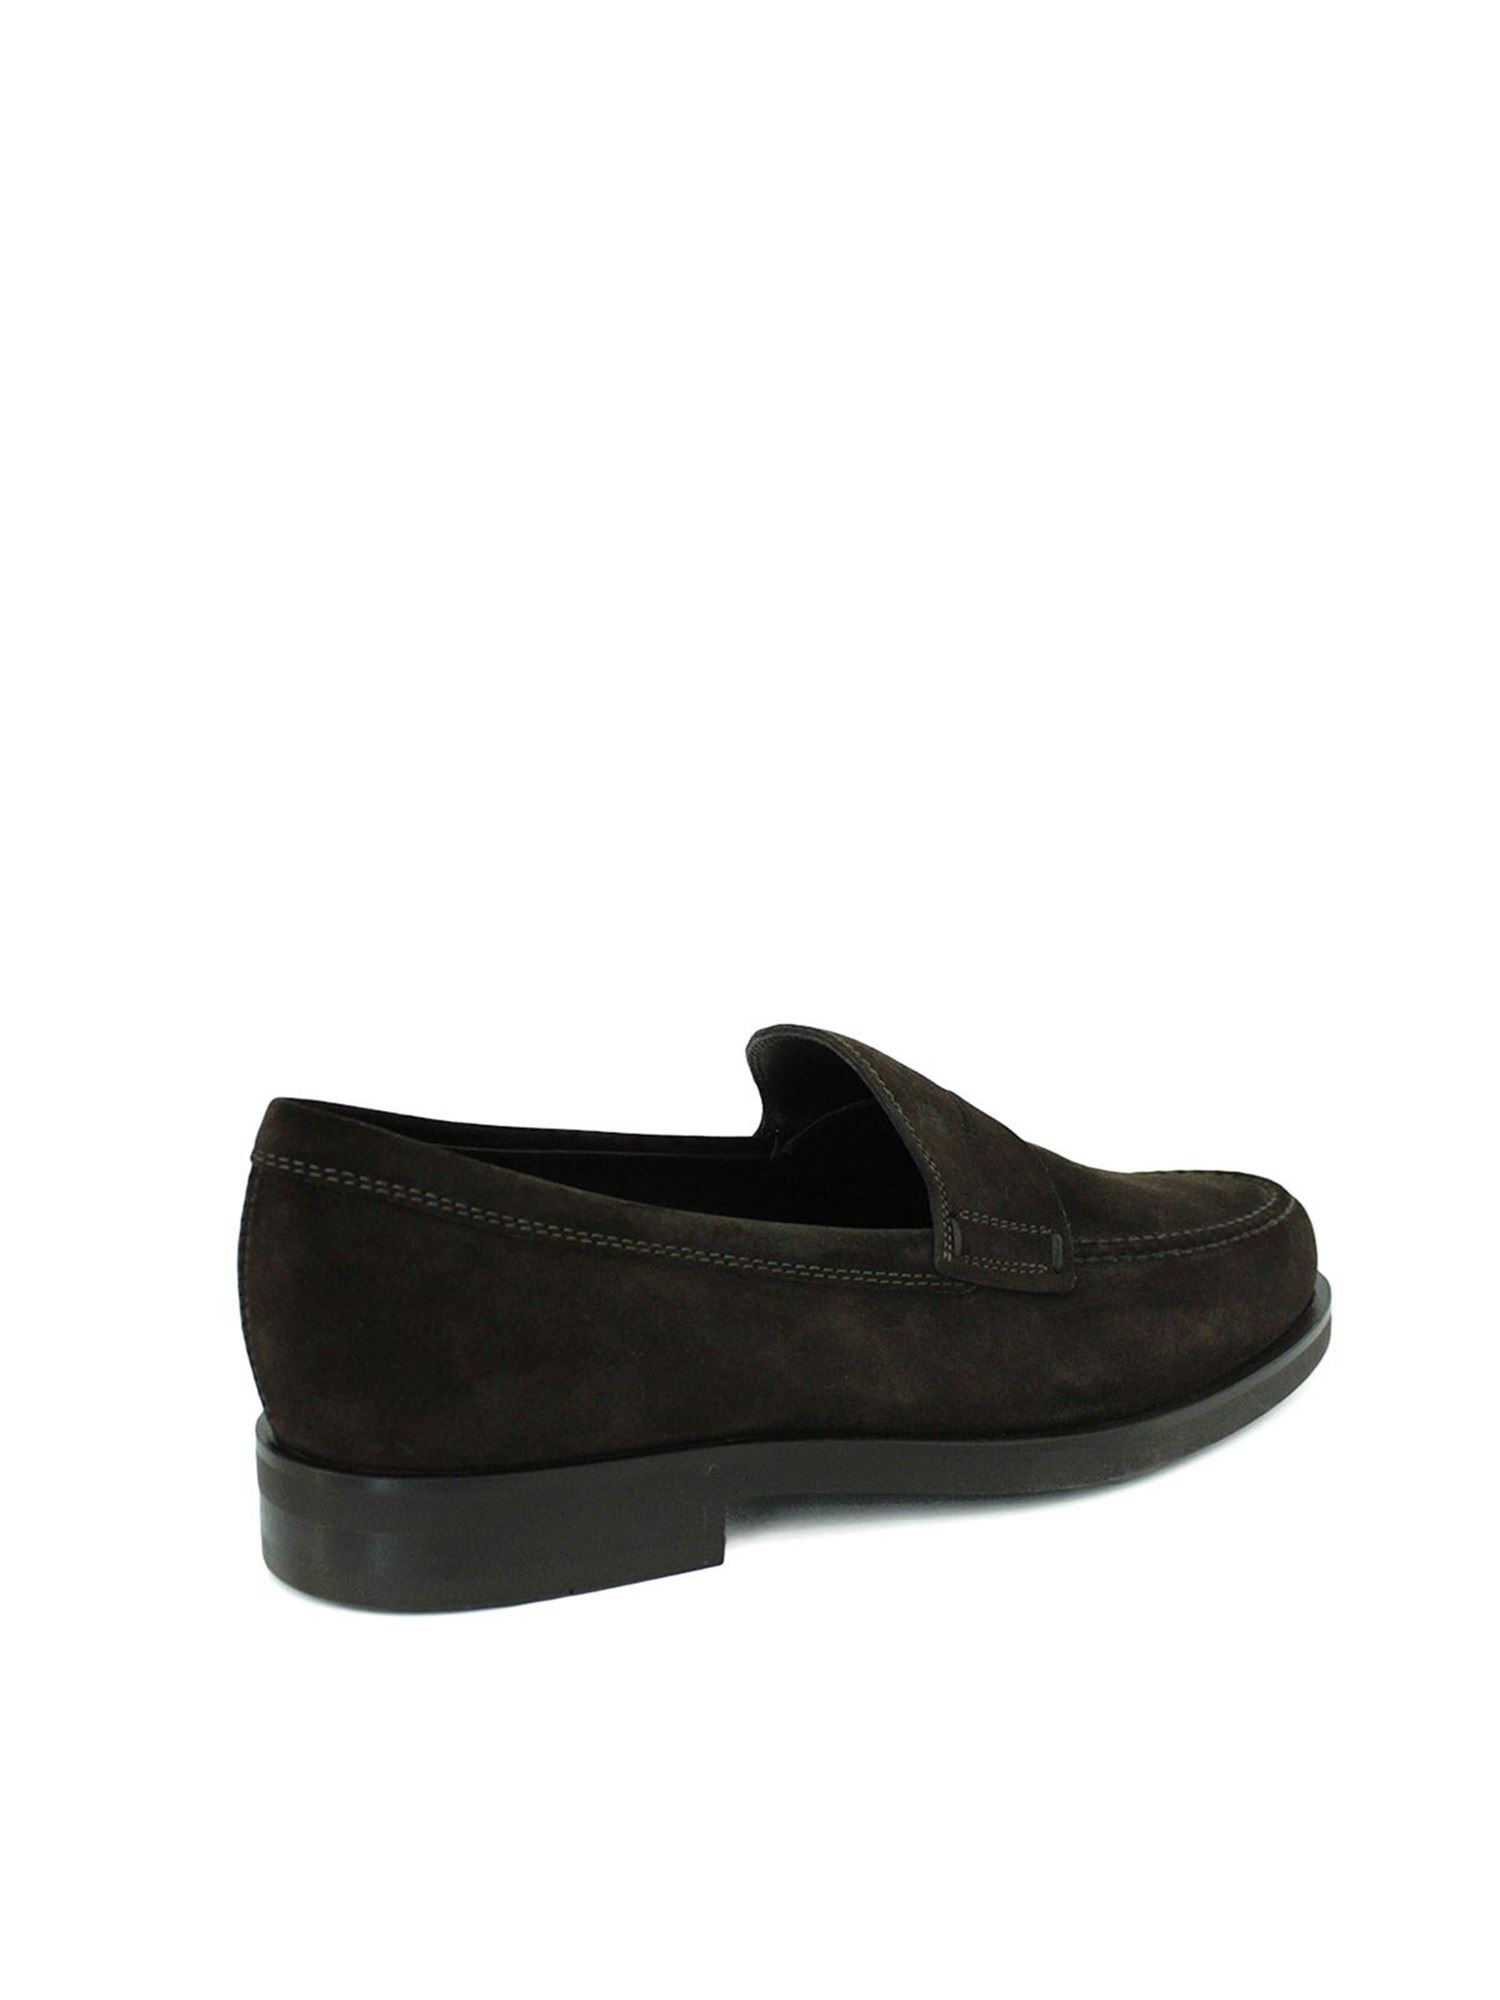 PENNY BAR SUEDE LOAFERS IN BROWN TOD